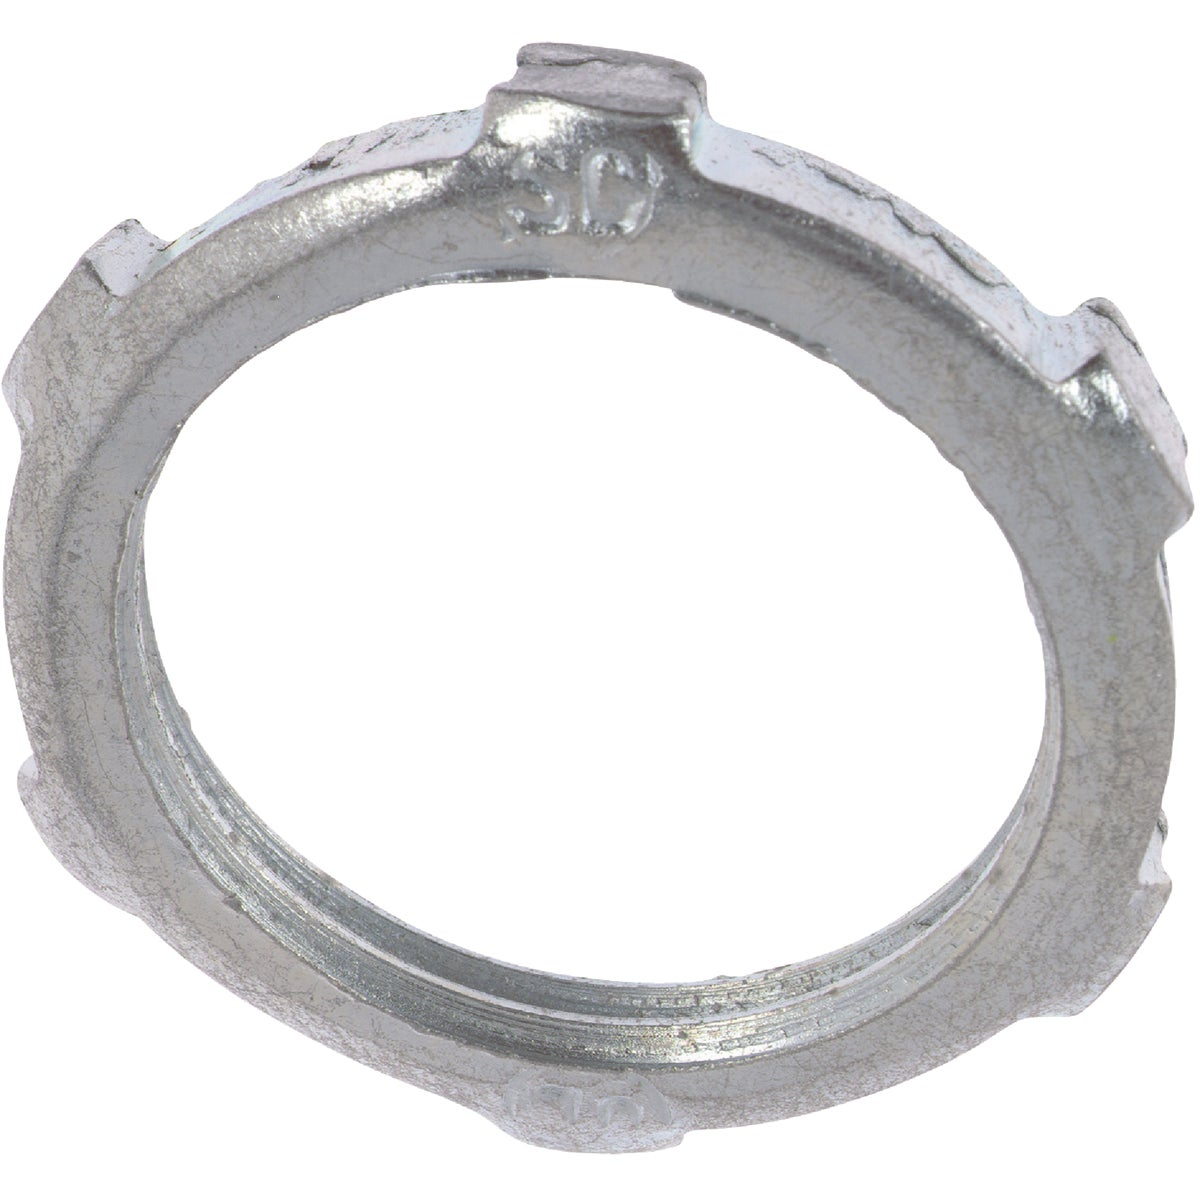 "1-1/2"" LOCKNUT - LN1051 by Thomas & Betts"